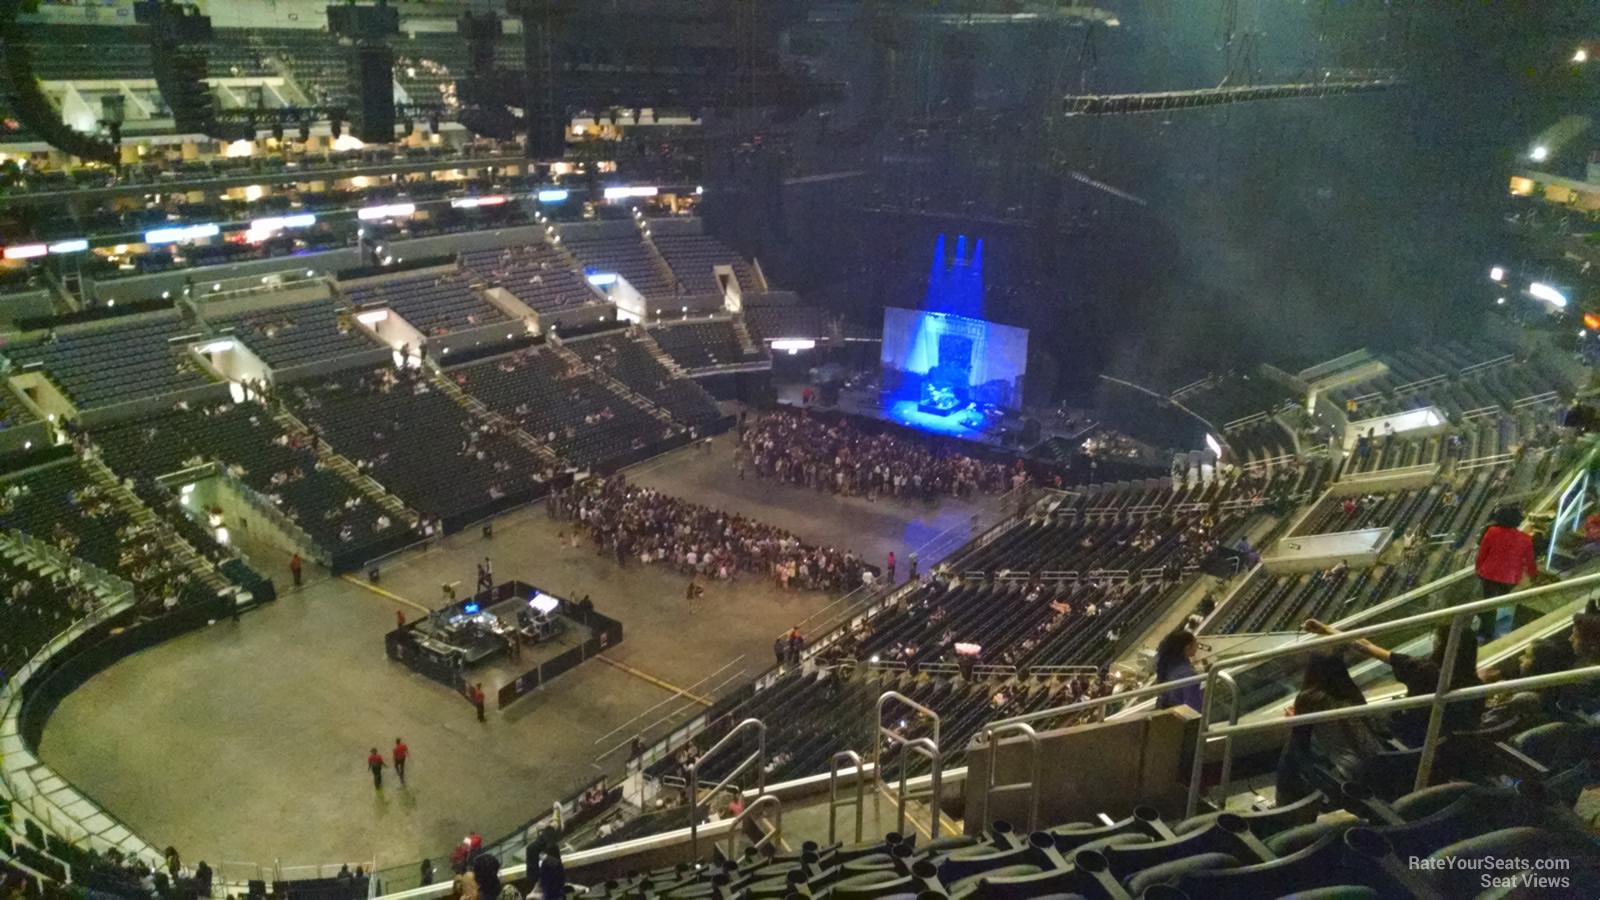 staples center section 305 concert seating - rateyourseats